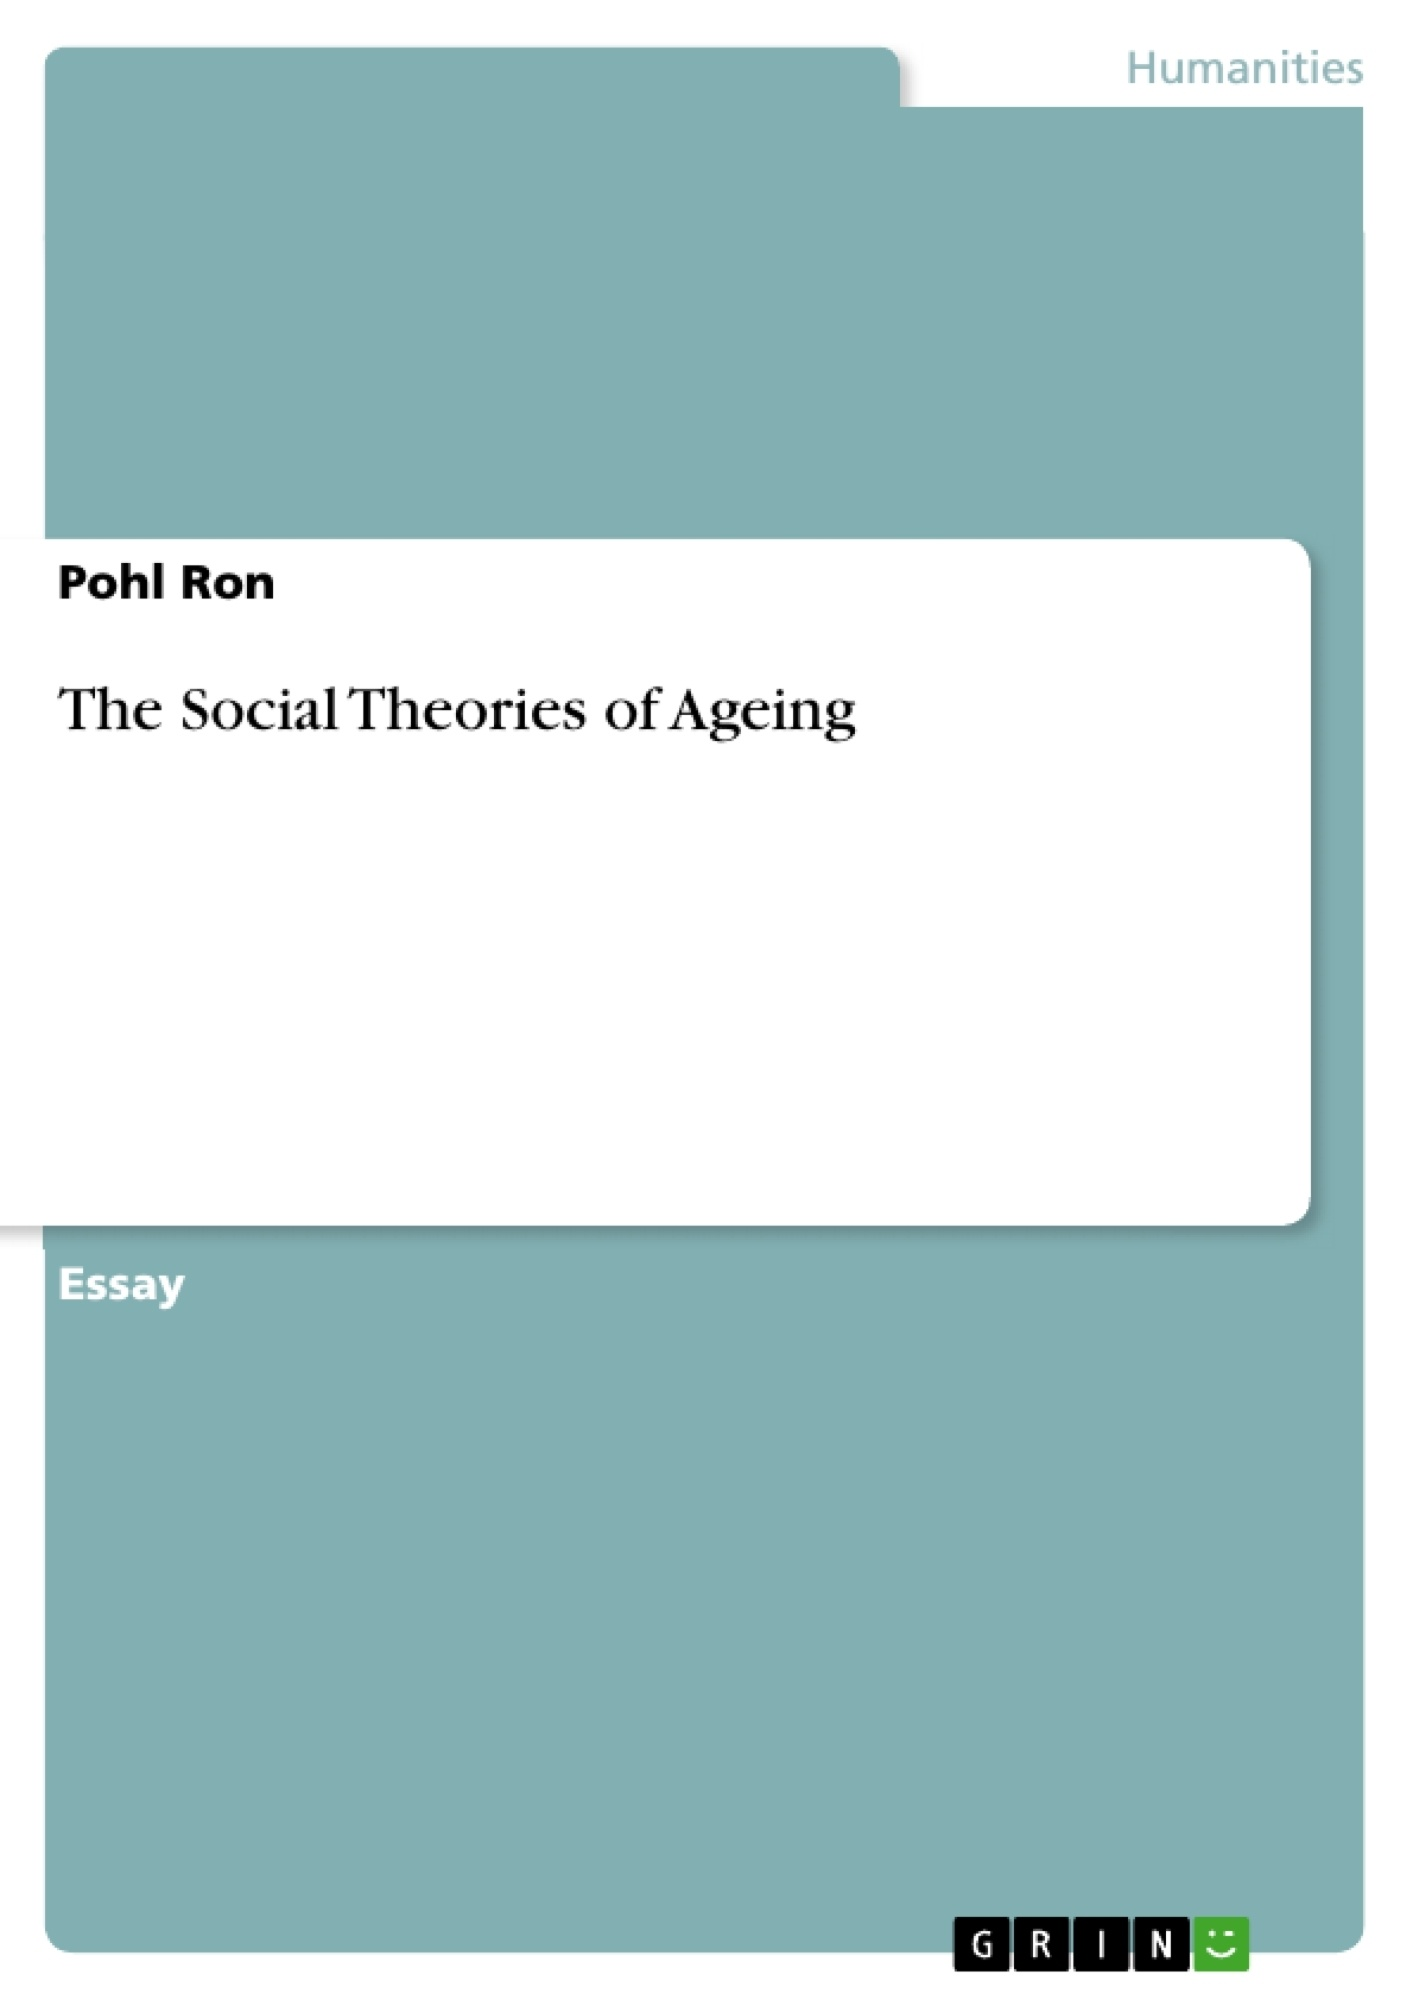 Title: The Social Theories of Ageing